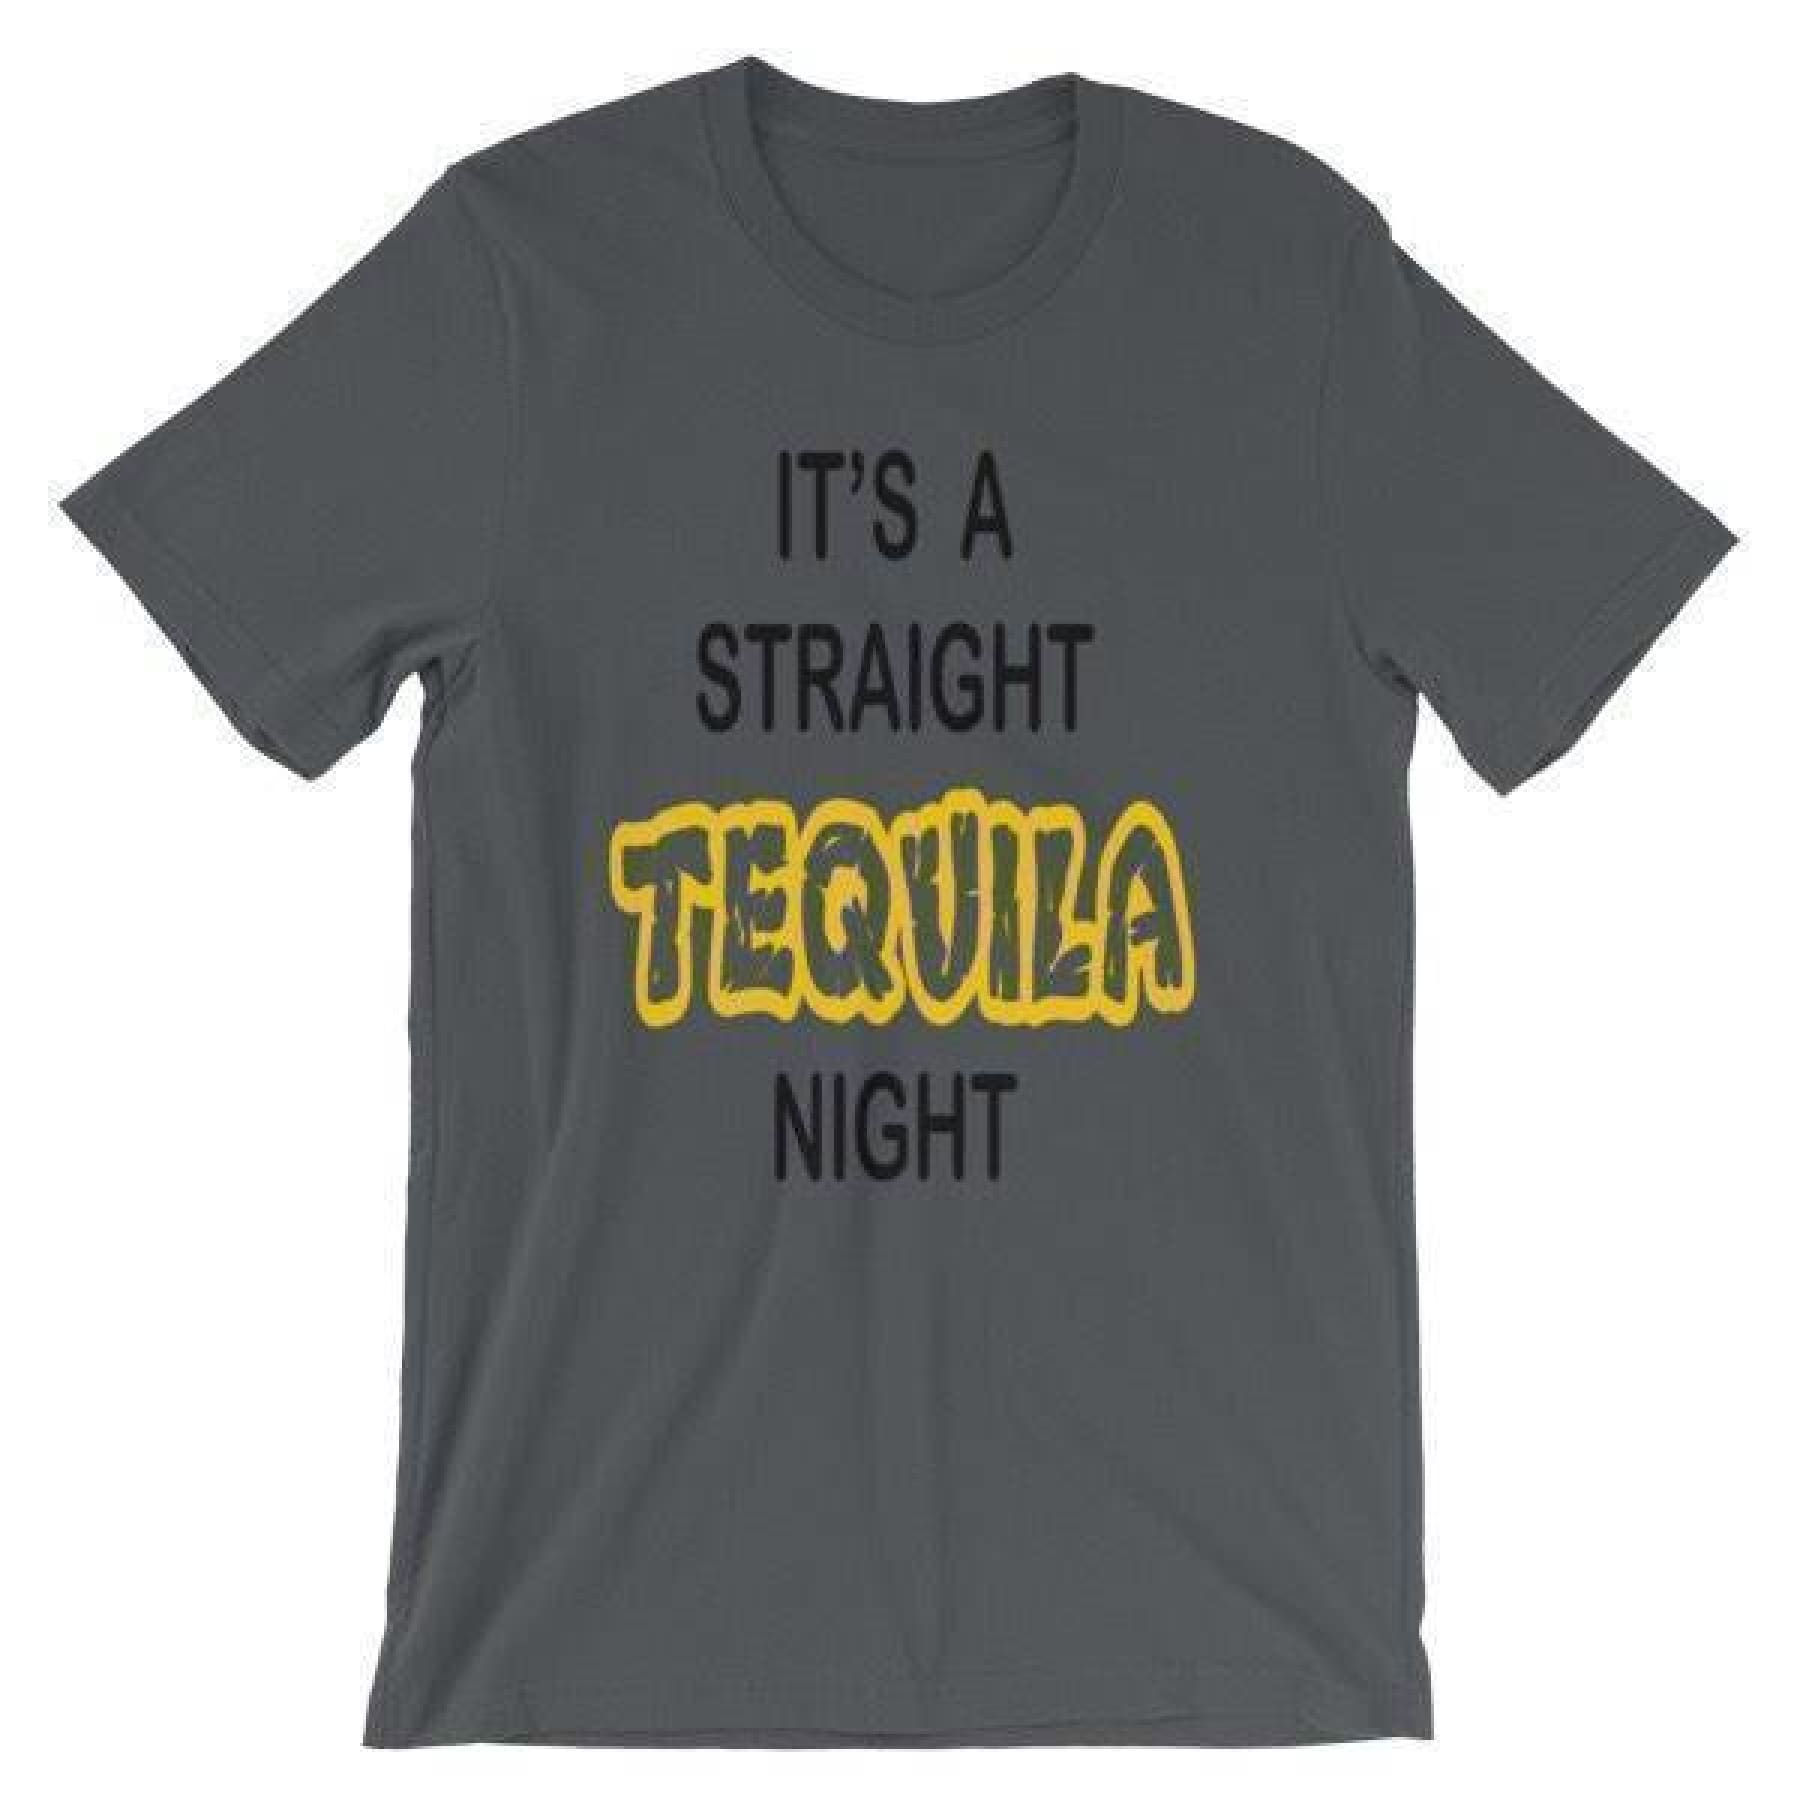 It's a Straight Tequila Night Tee.